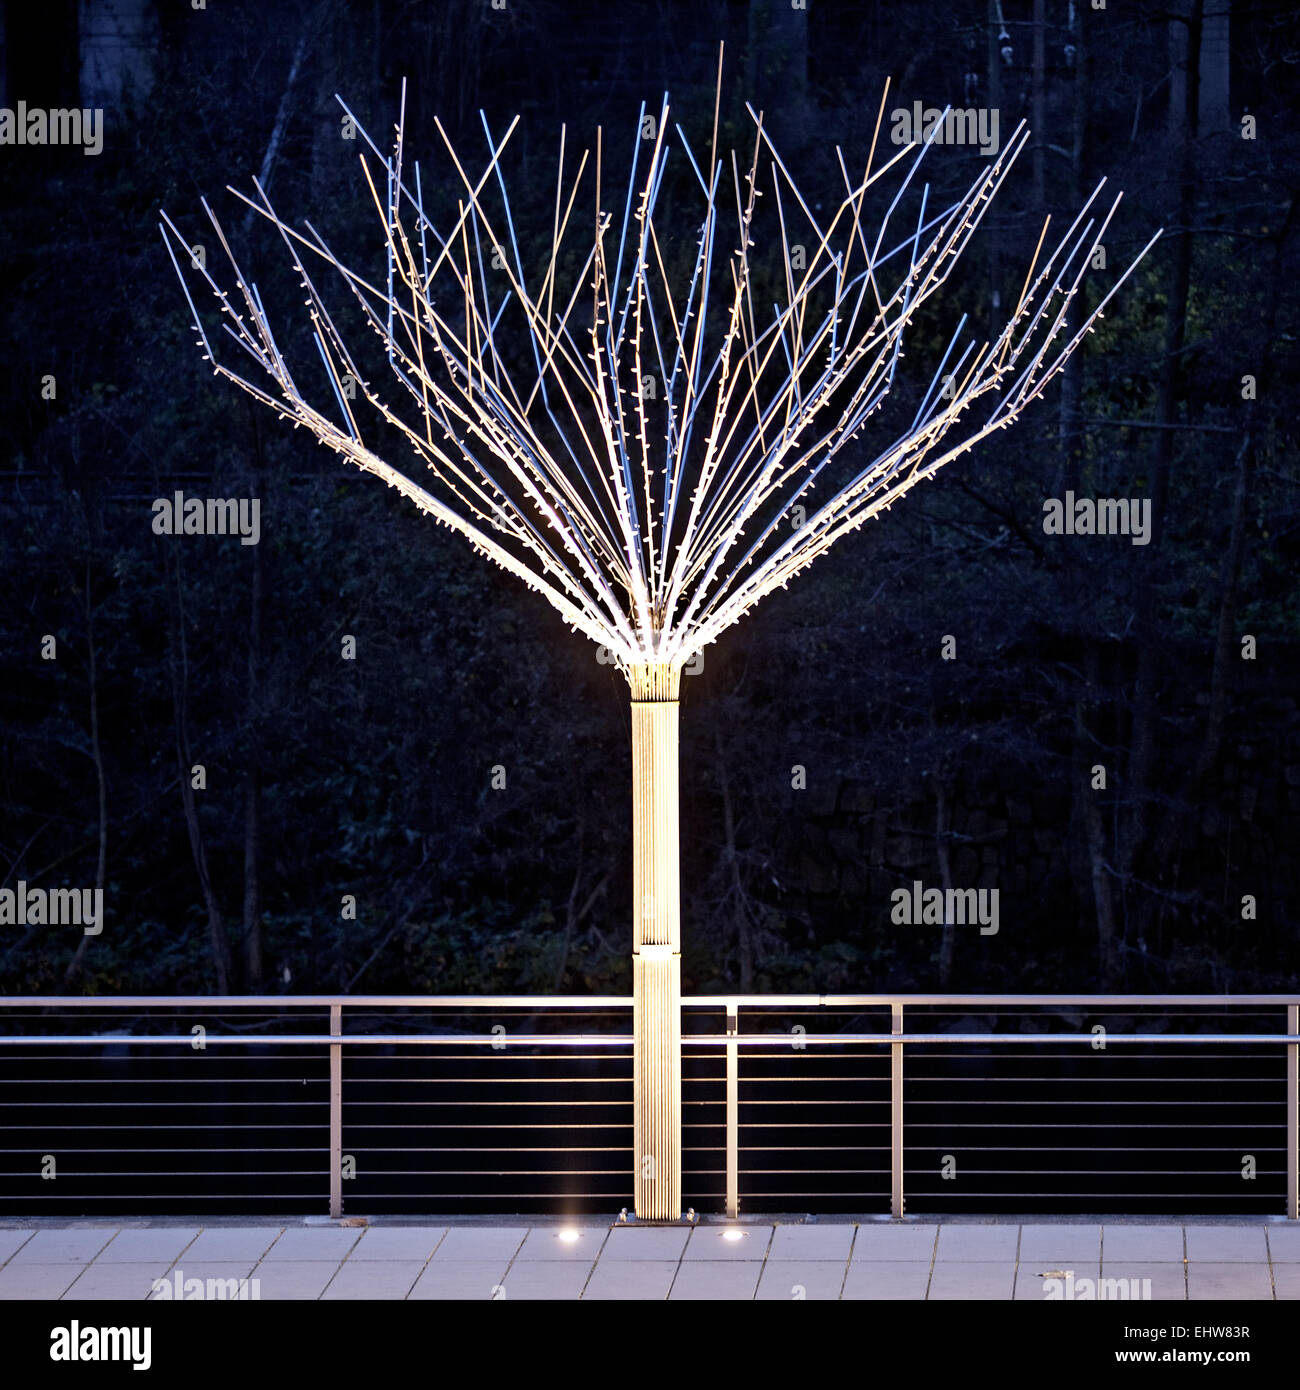 One the illuminated tree of metal in Altena - Stock Image